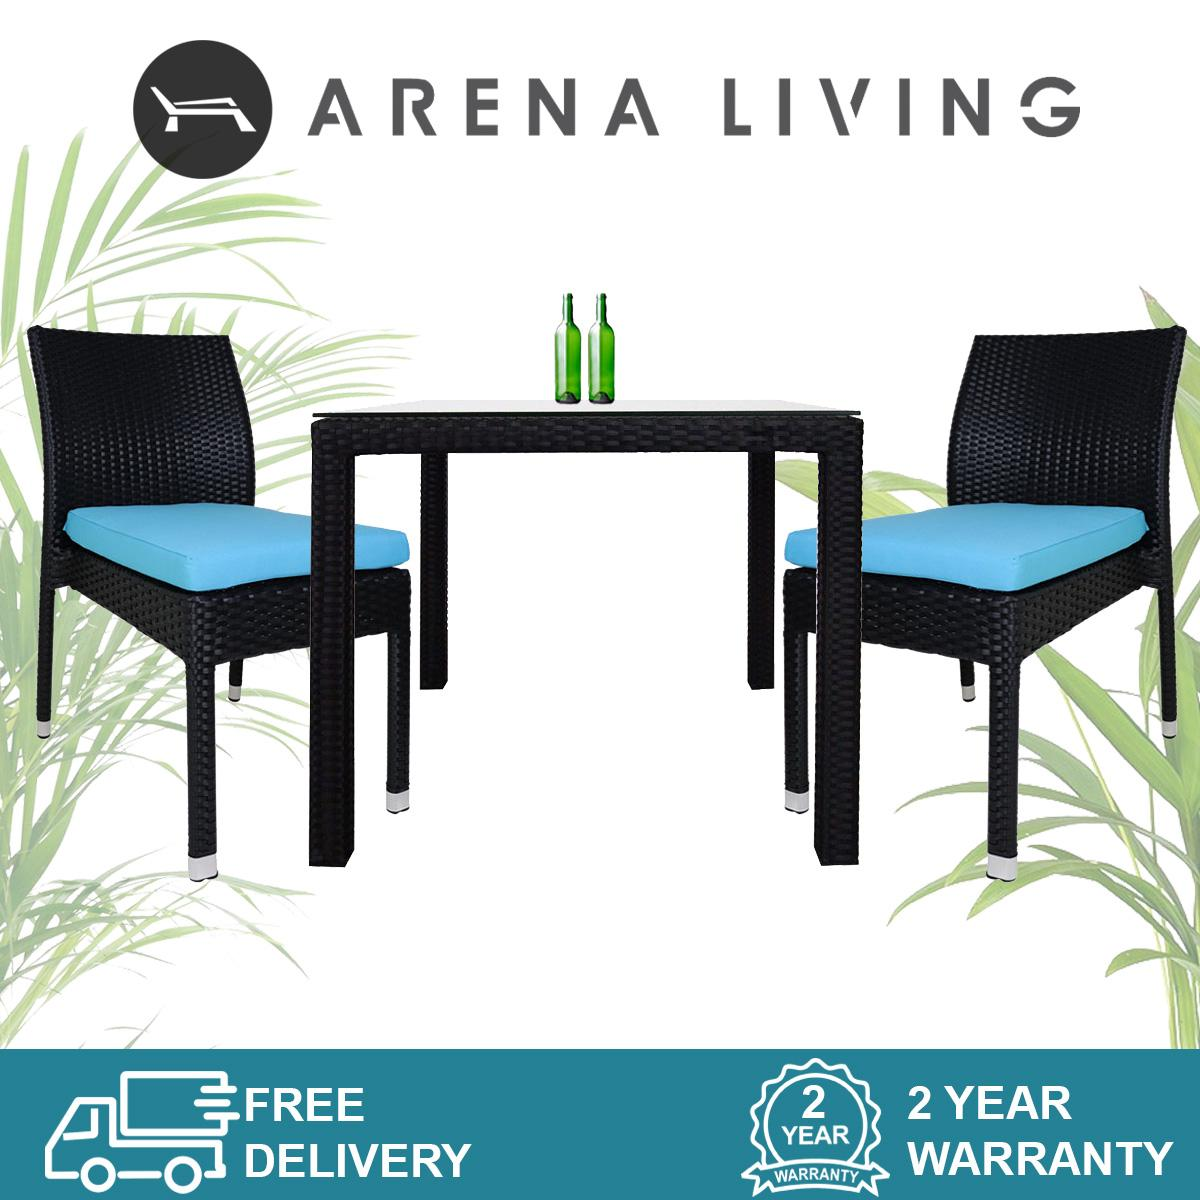 Monde Outdoor 2 Chair Dining Set by Arena Living - 2 Year Warranty